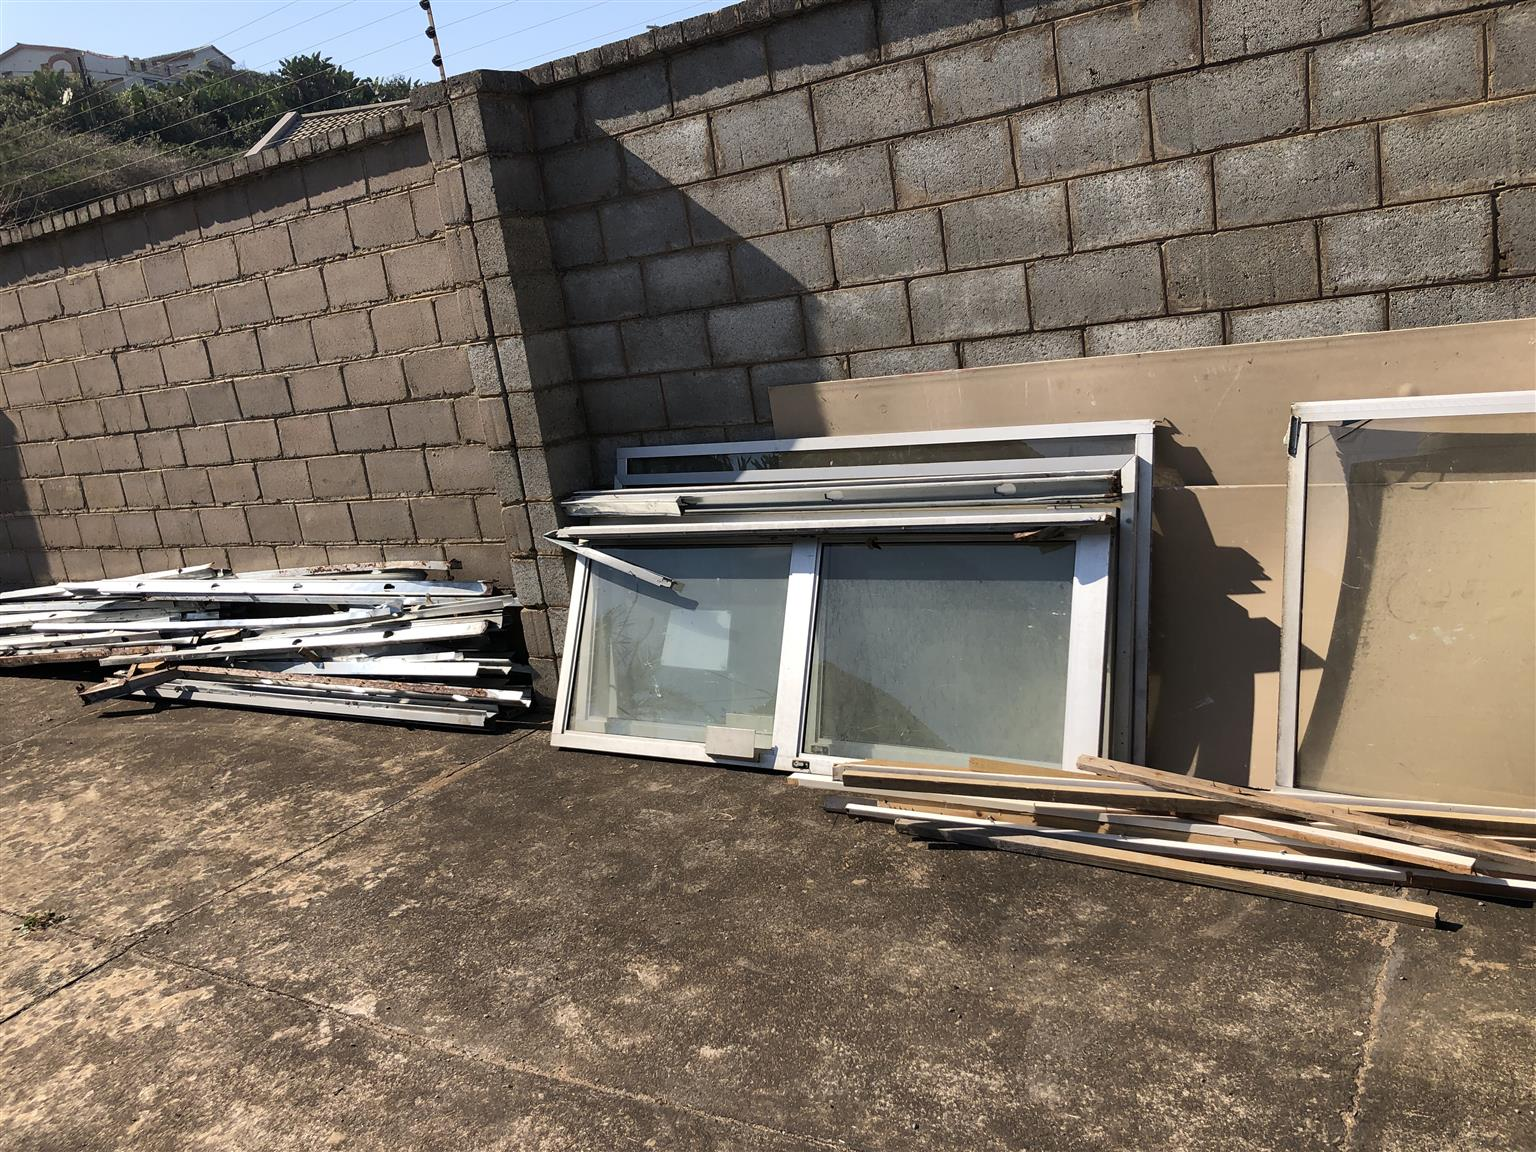 Used drywall struts aluminum door frames and window frames shop shelving toilets, baisins,urinals etc for sale